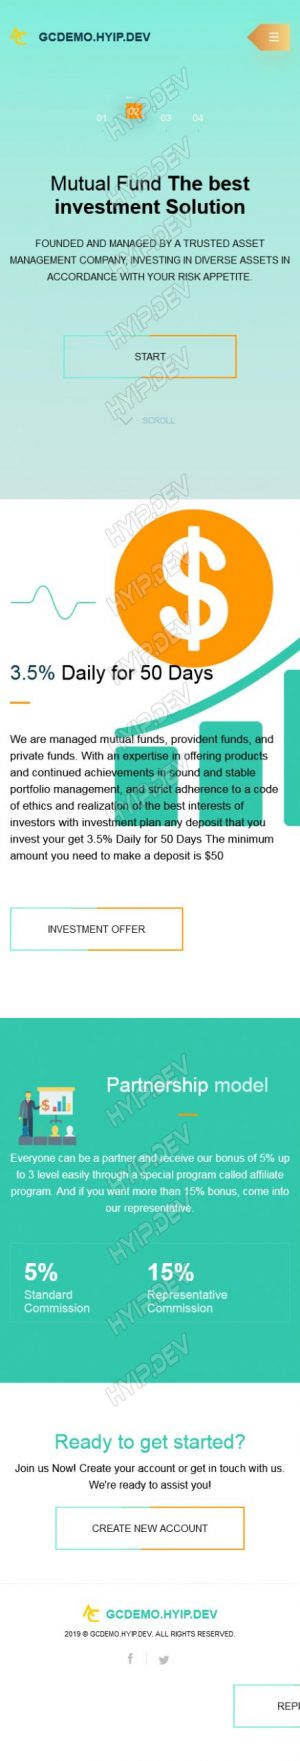 goldcoders hyip template no. 181, mobile page screenshot